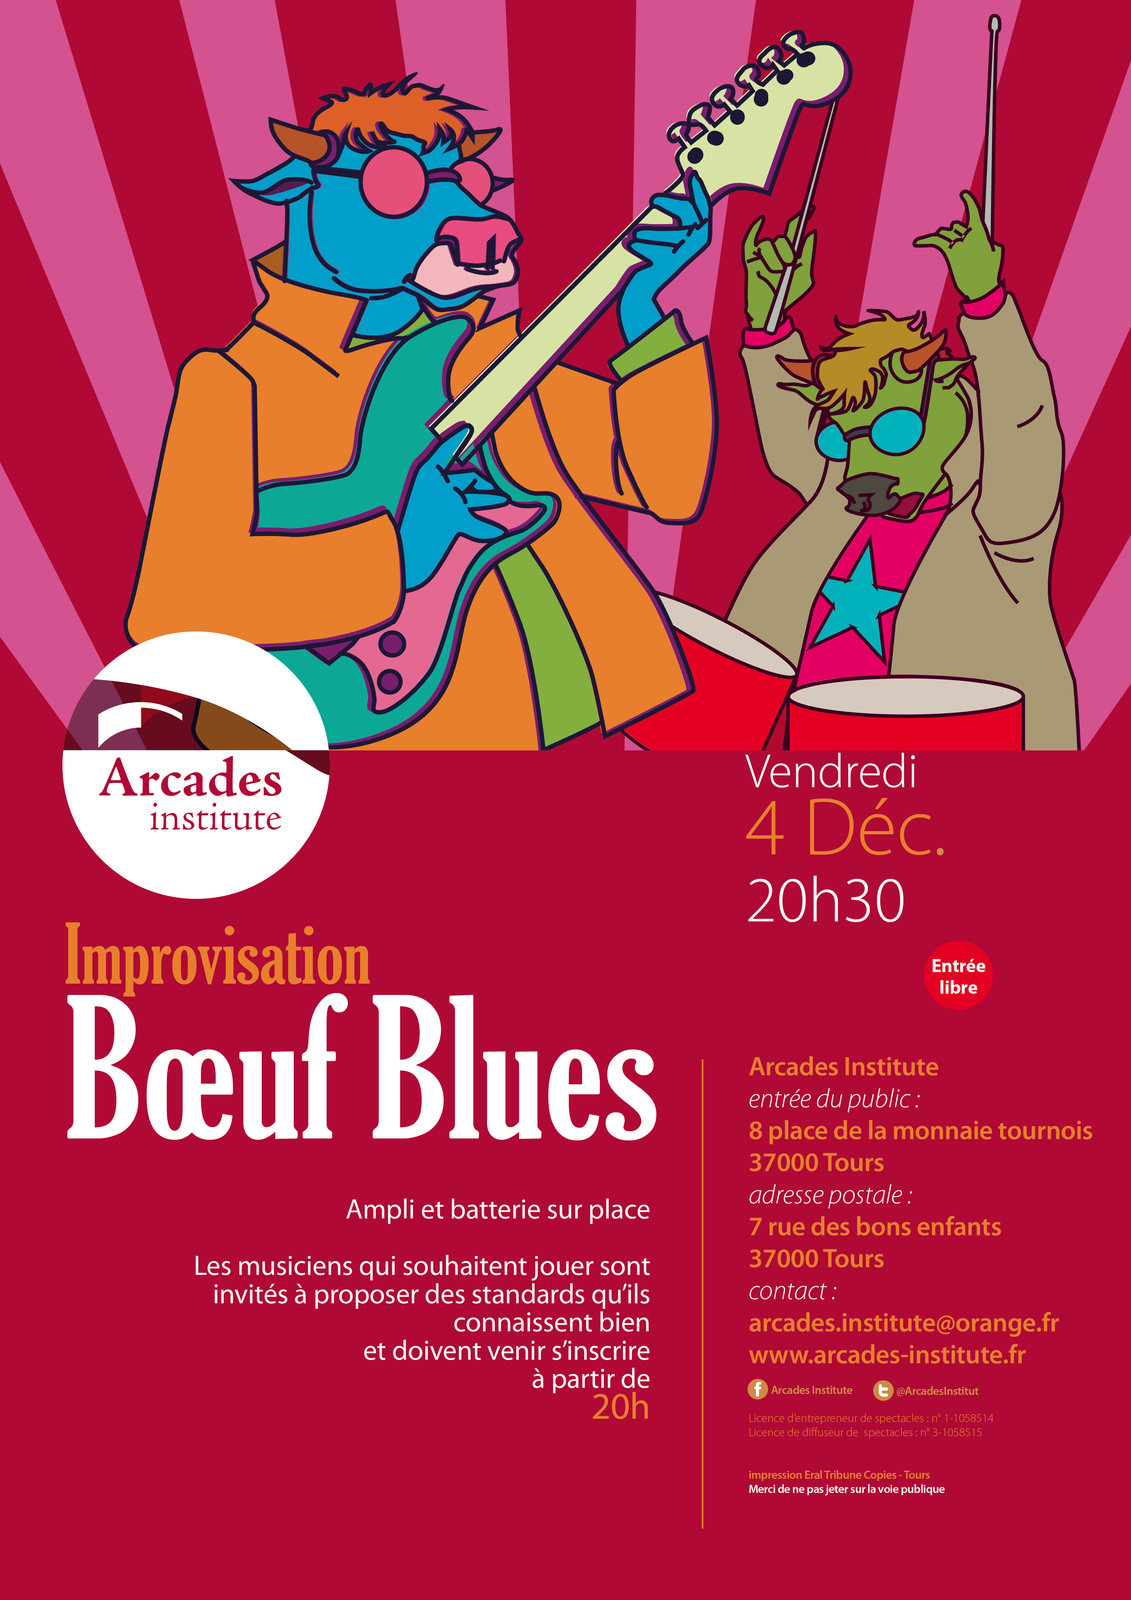 Ven. 4 déc. 20h30 Bœuf blues à Arcades Institute